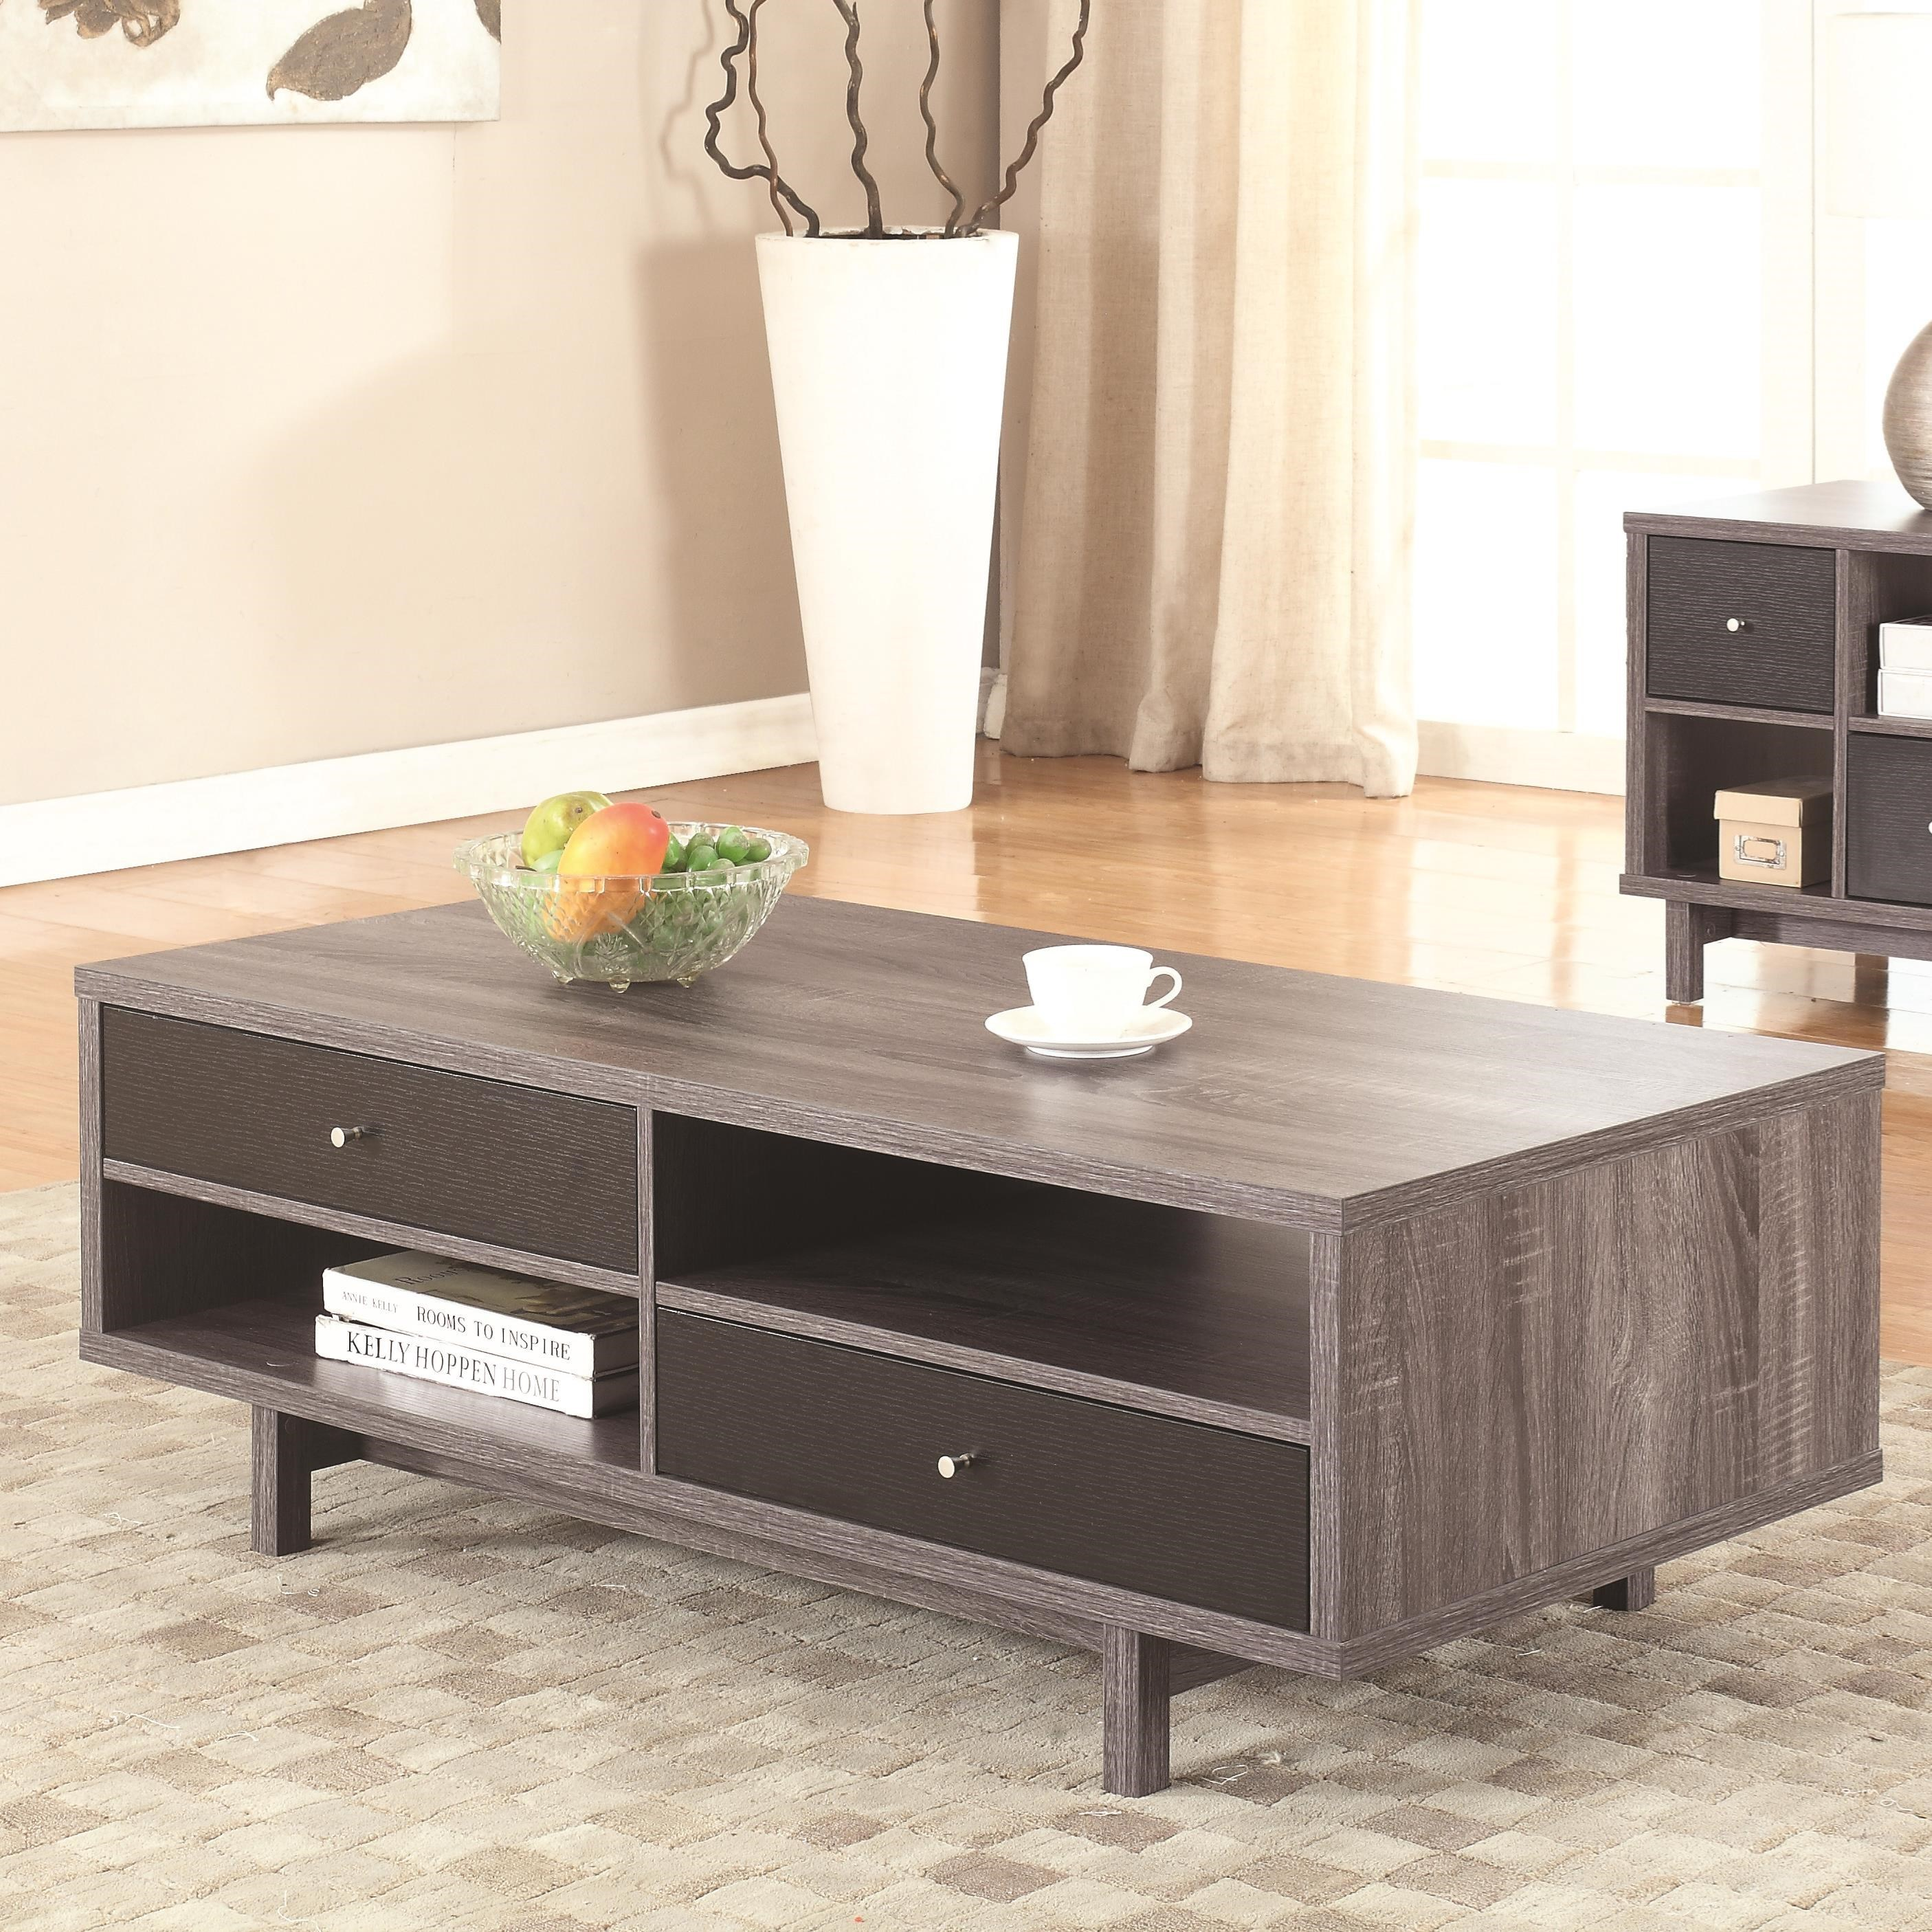 Modern Coffee Table With Storage 70538 Grey Mid Century Modern Coffee Table By Coaster At Value City Furniture